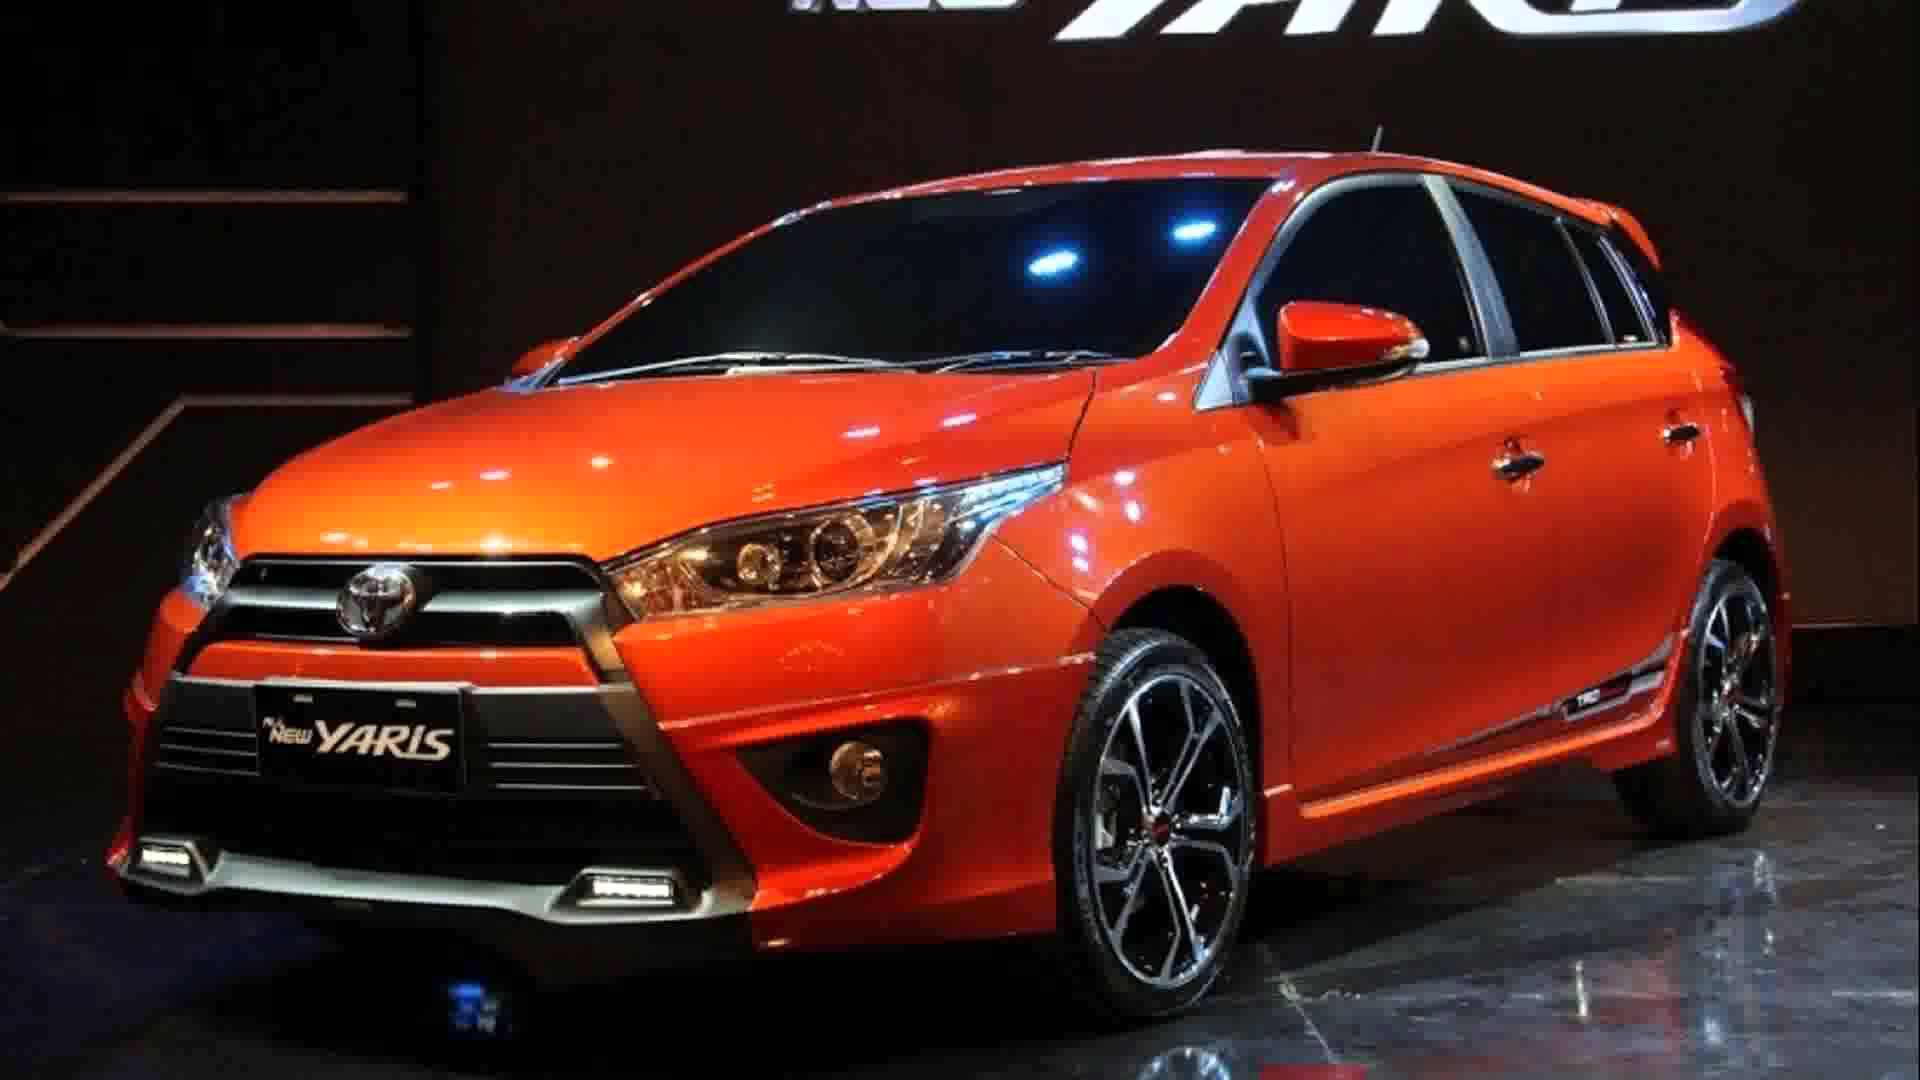 Toyota Cars Wallpapers Free Download Toyota Yaris Hatchback 2017 Hd Wallpapers